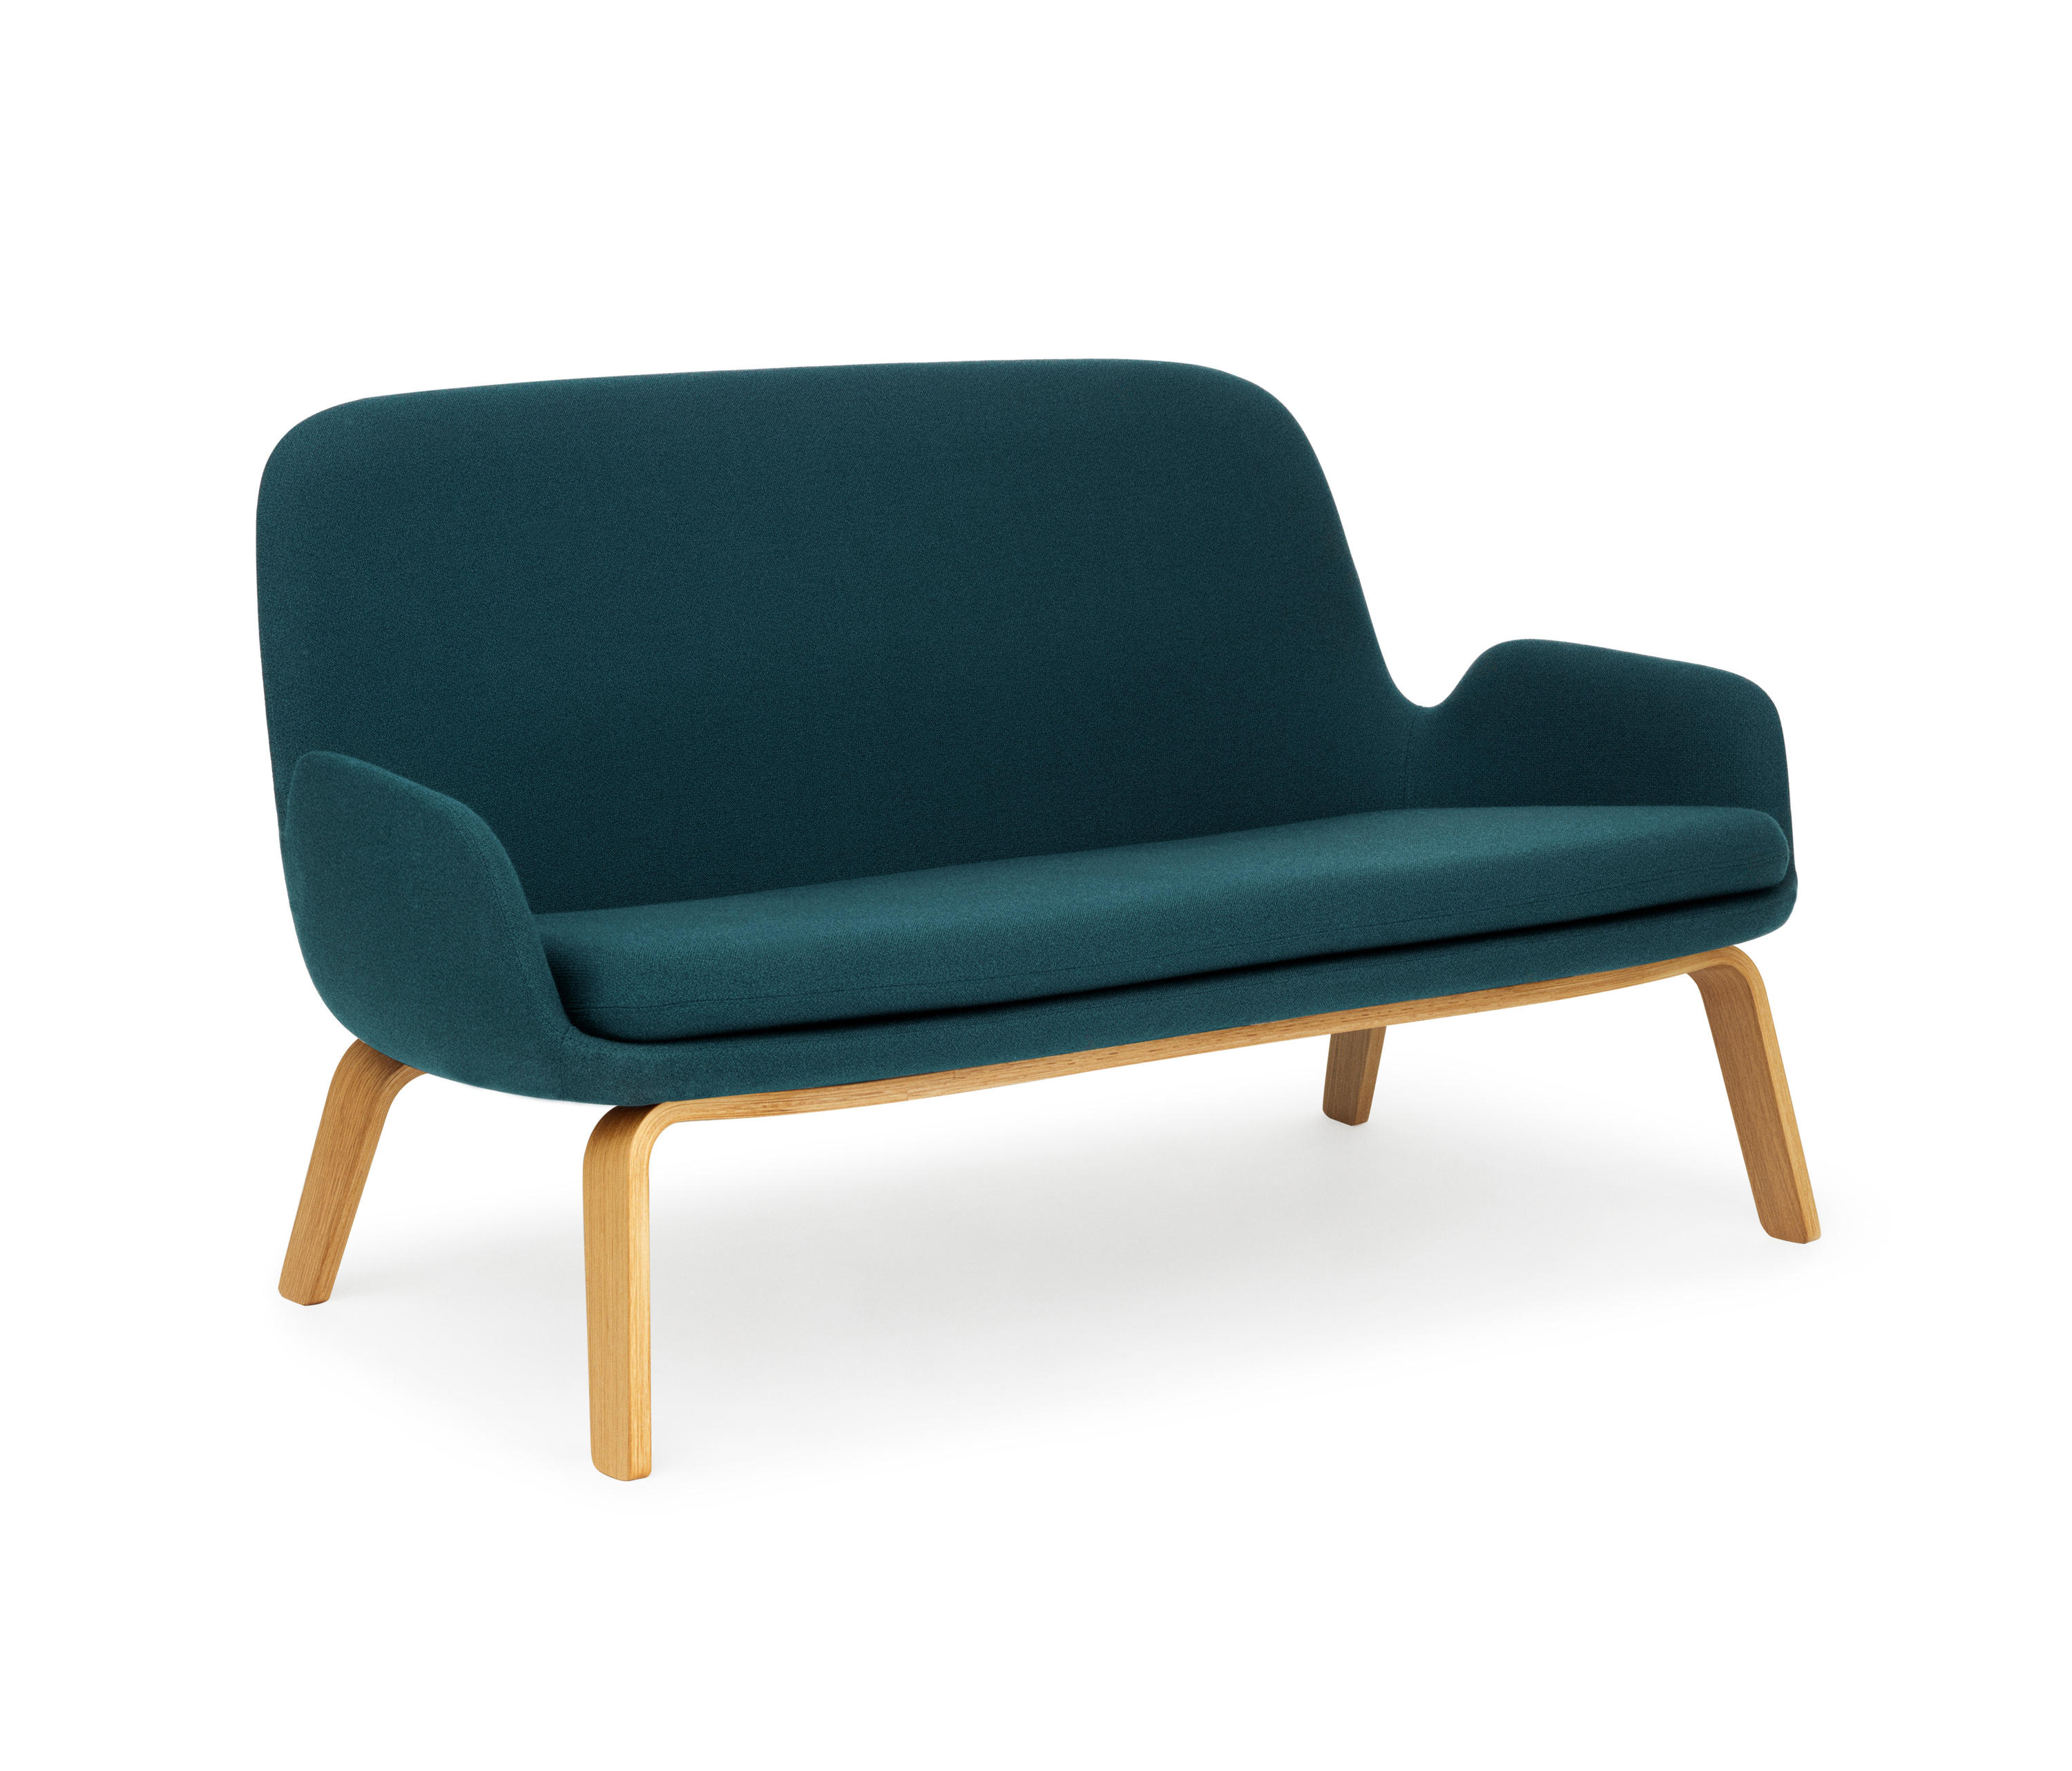 era sofa loungesofas von normann copenhagen architonic. Black Bedroom Furniture Sets. Home Design Ideas